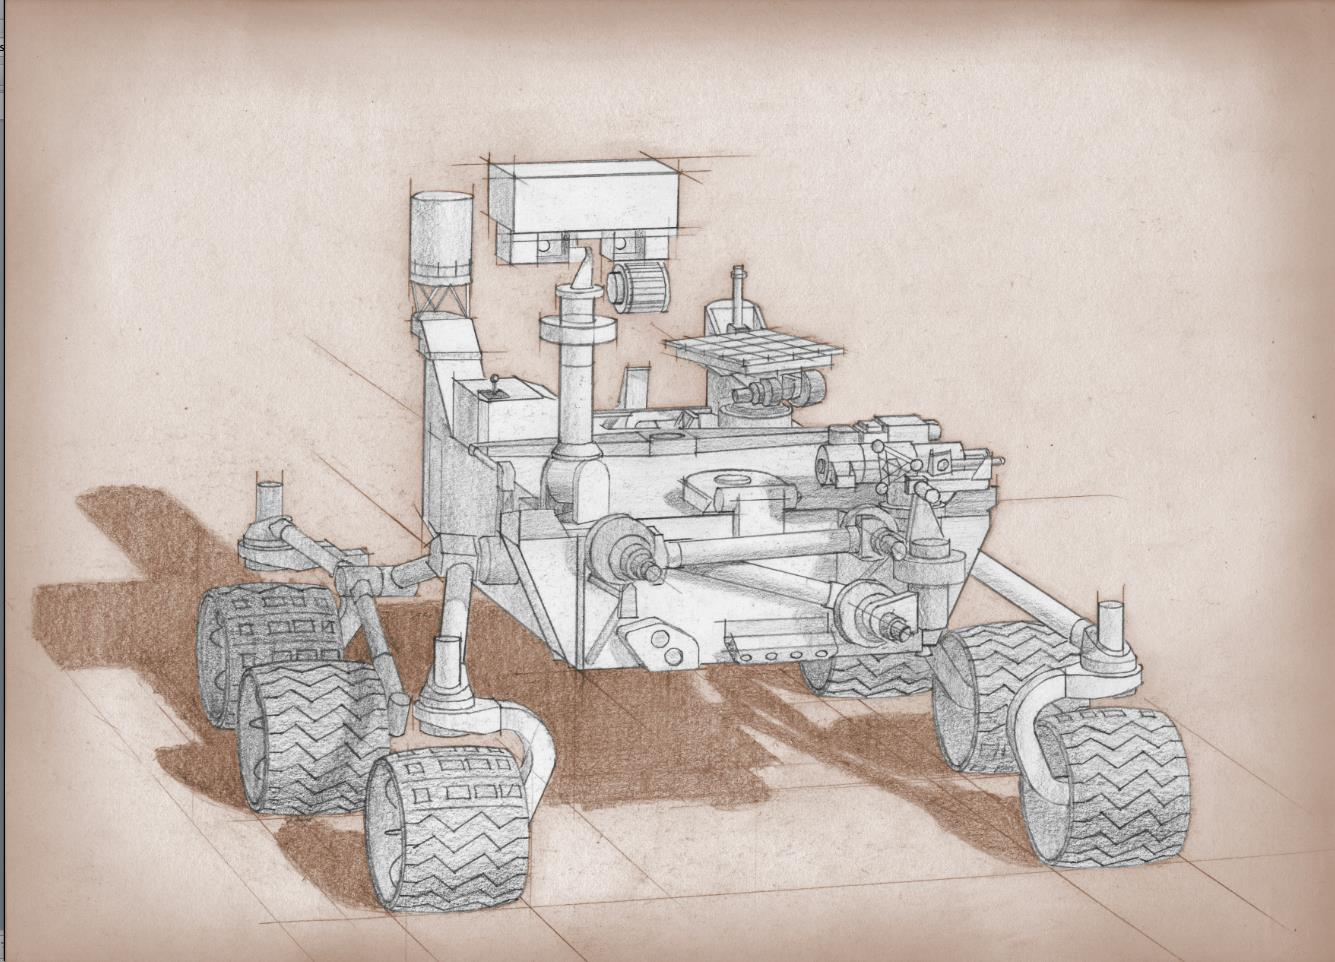 Rover - 2020 Mission Plans